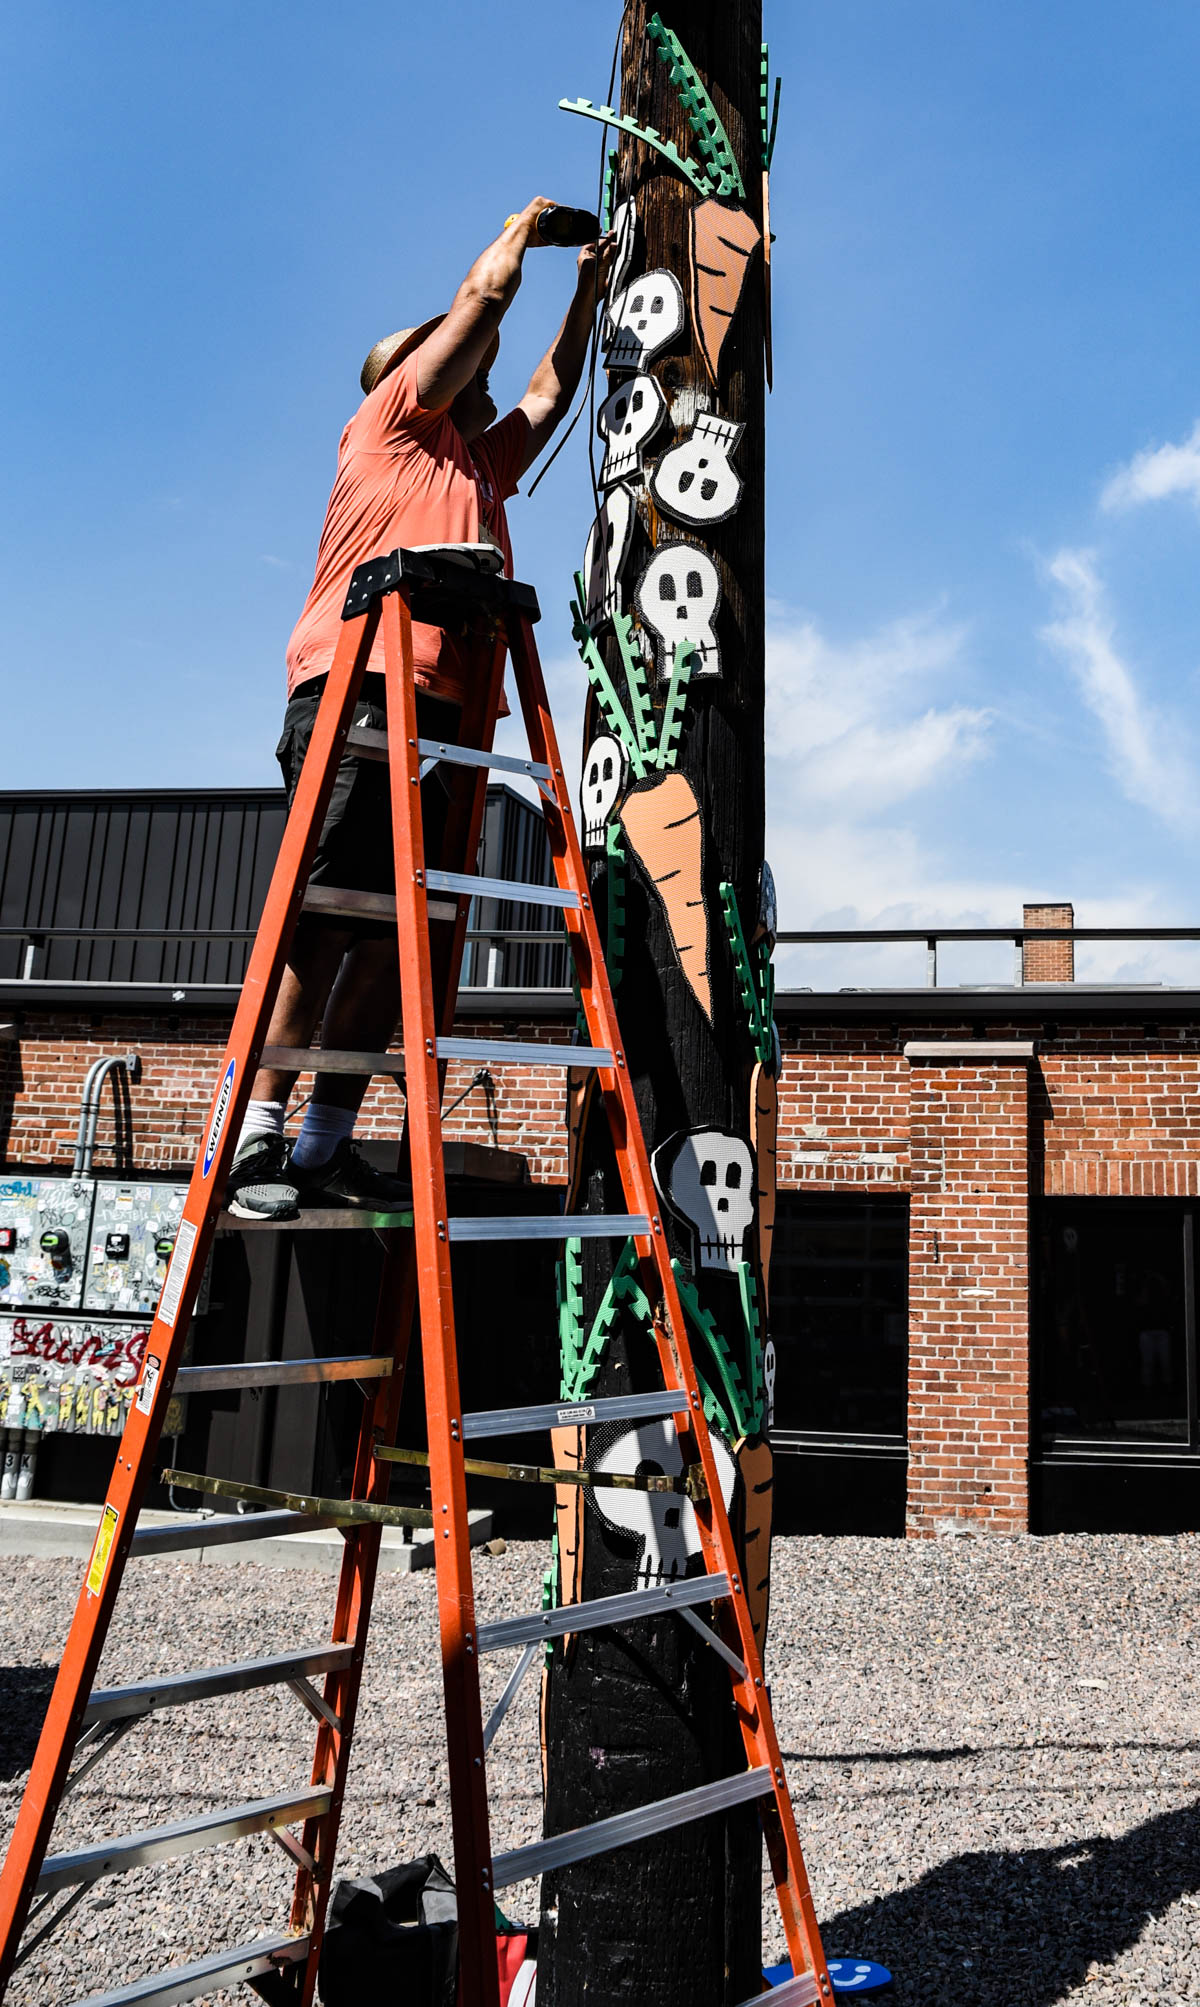 An artist finishes up his piece at Crush Walls 2019 | River North Arts District (RINO) | Denver, CO. | 09/06/2019 | Photos: ©Pix Meyers 2019